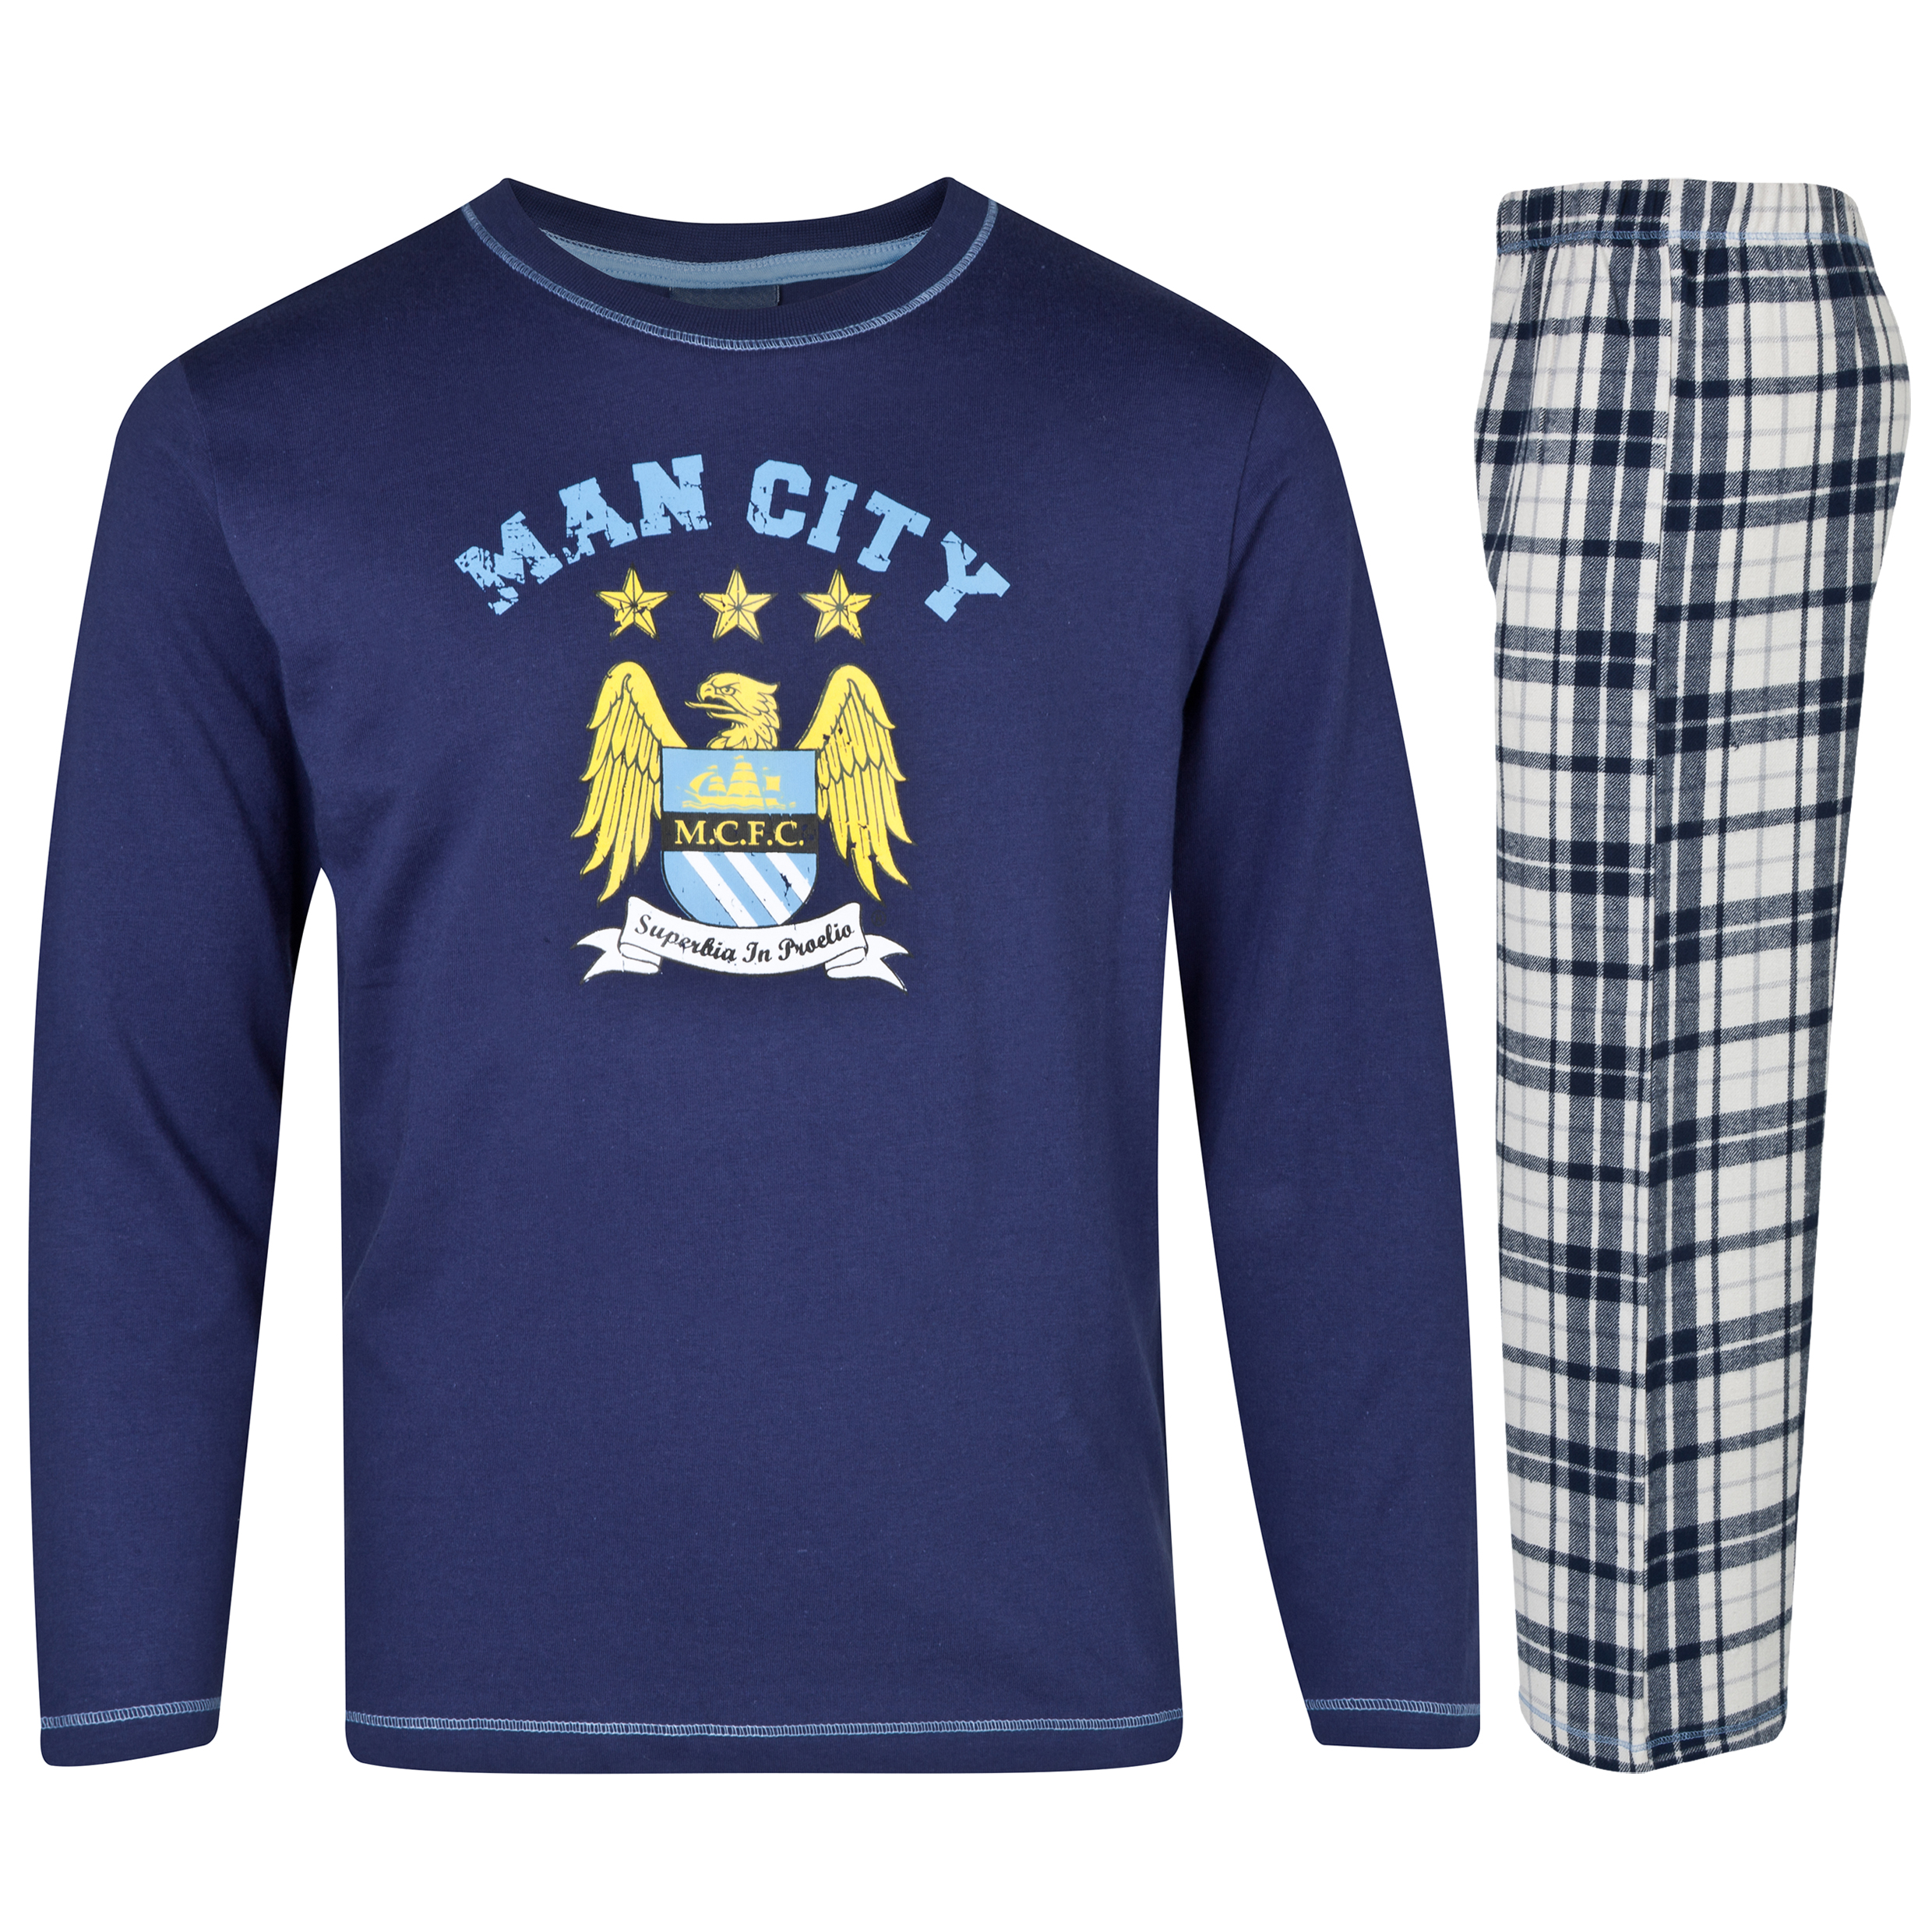 Manchester City Crest Pyjama Older Boys Navy